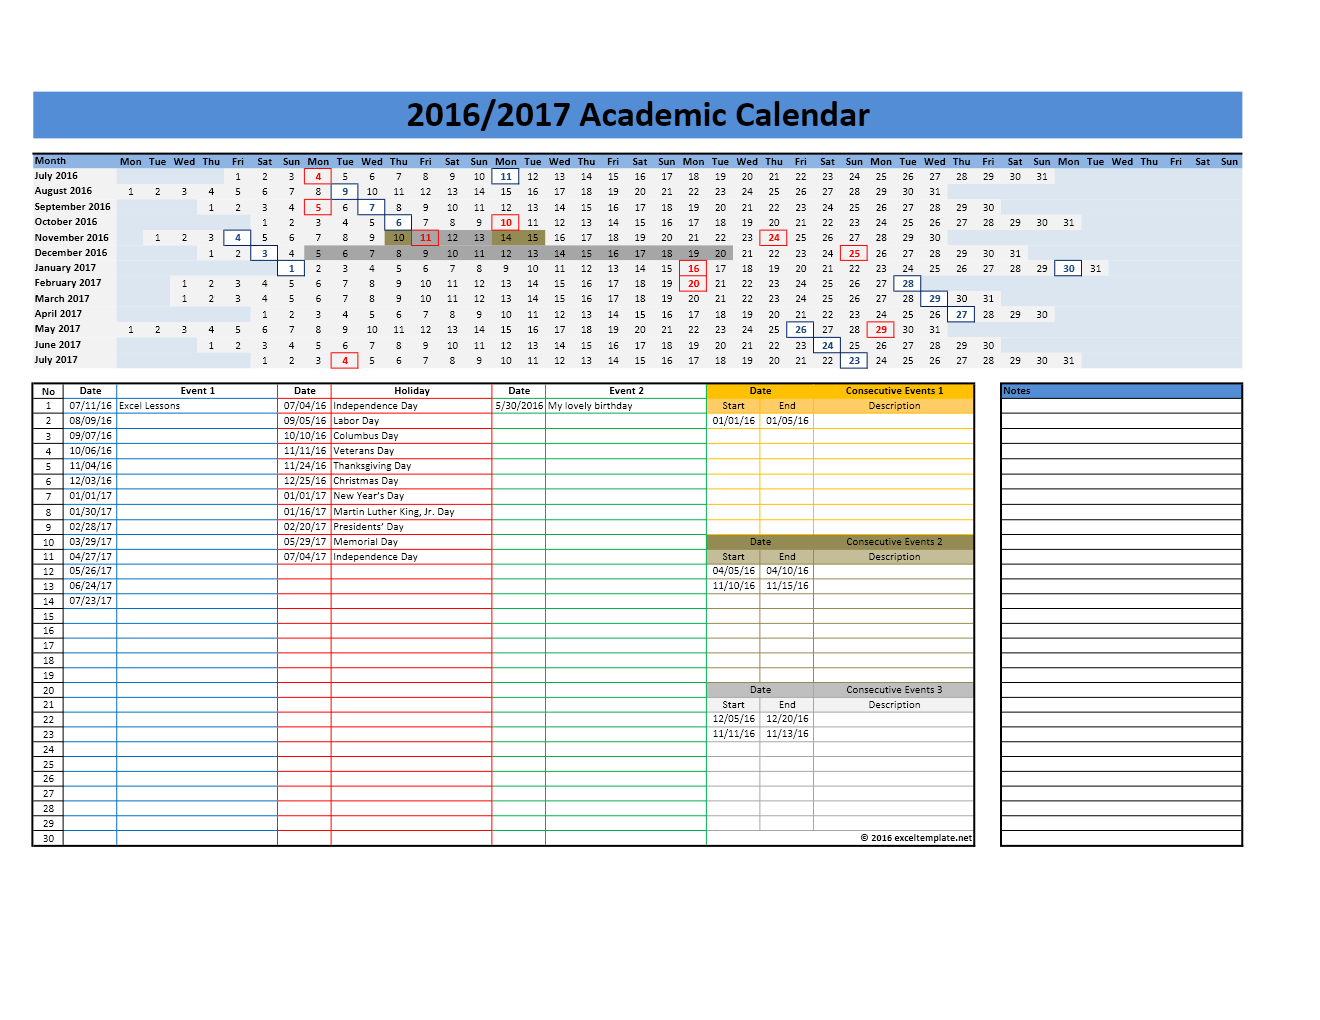 20172018 and 20162017 school calendar templates excel